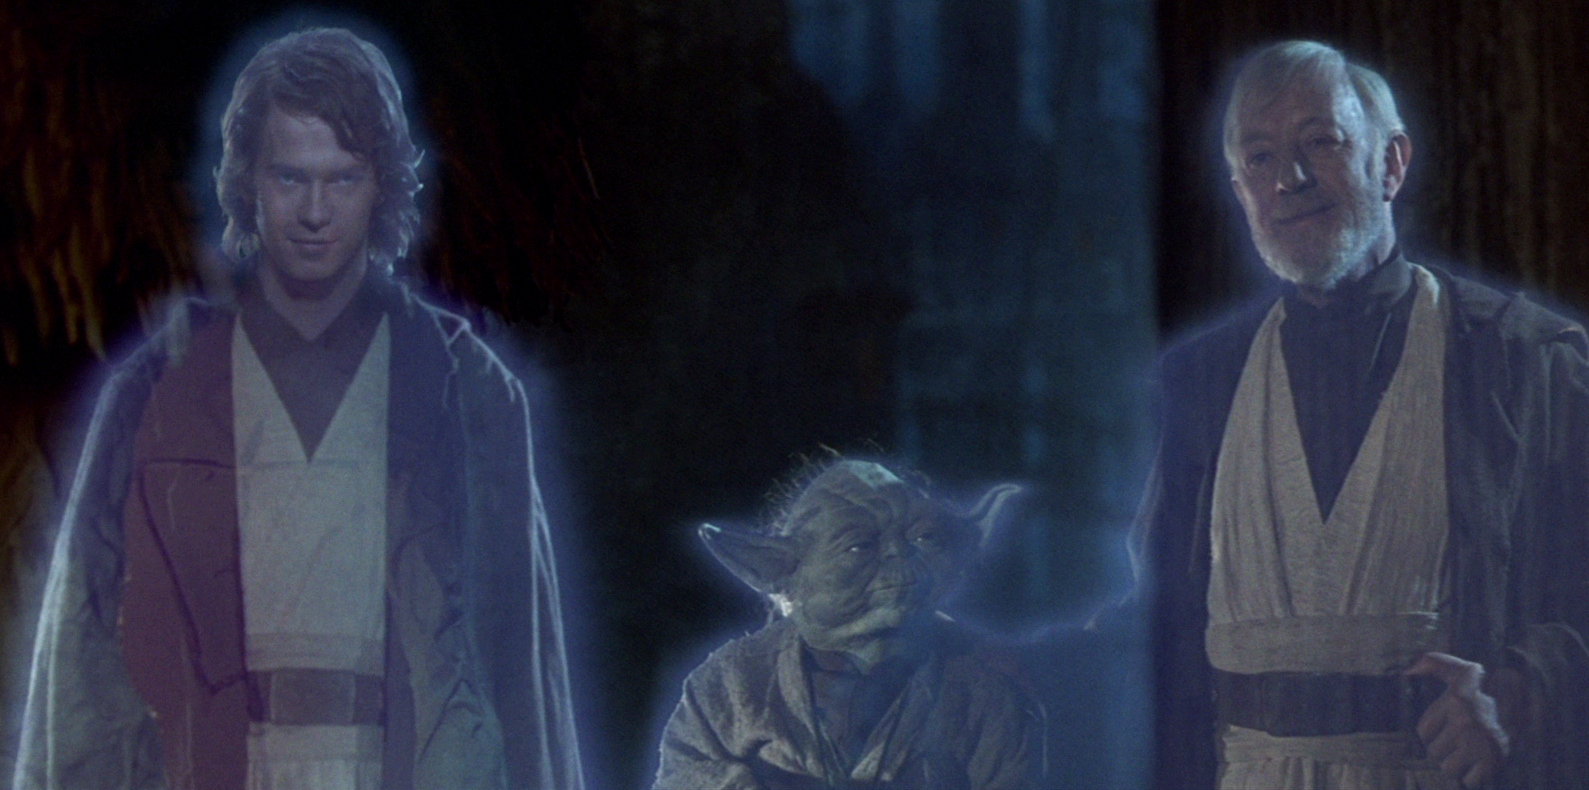 Star Wars: 10 Things You Didn't Know About The Jedi